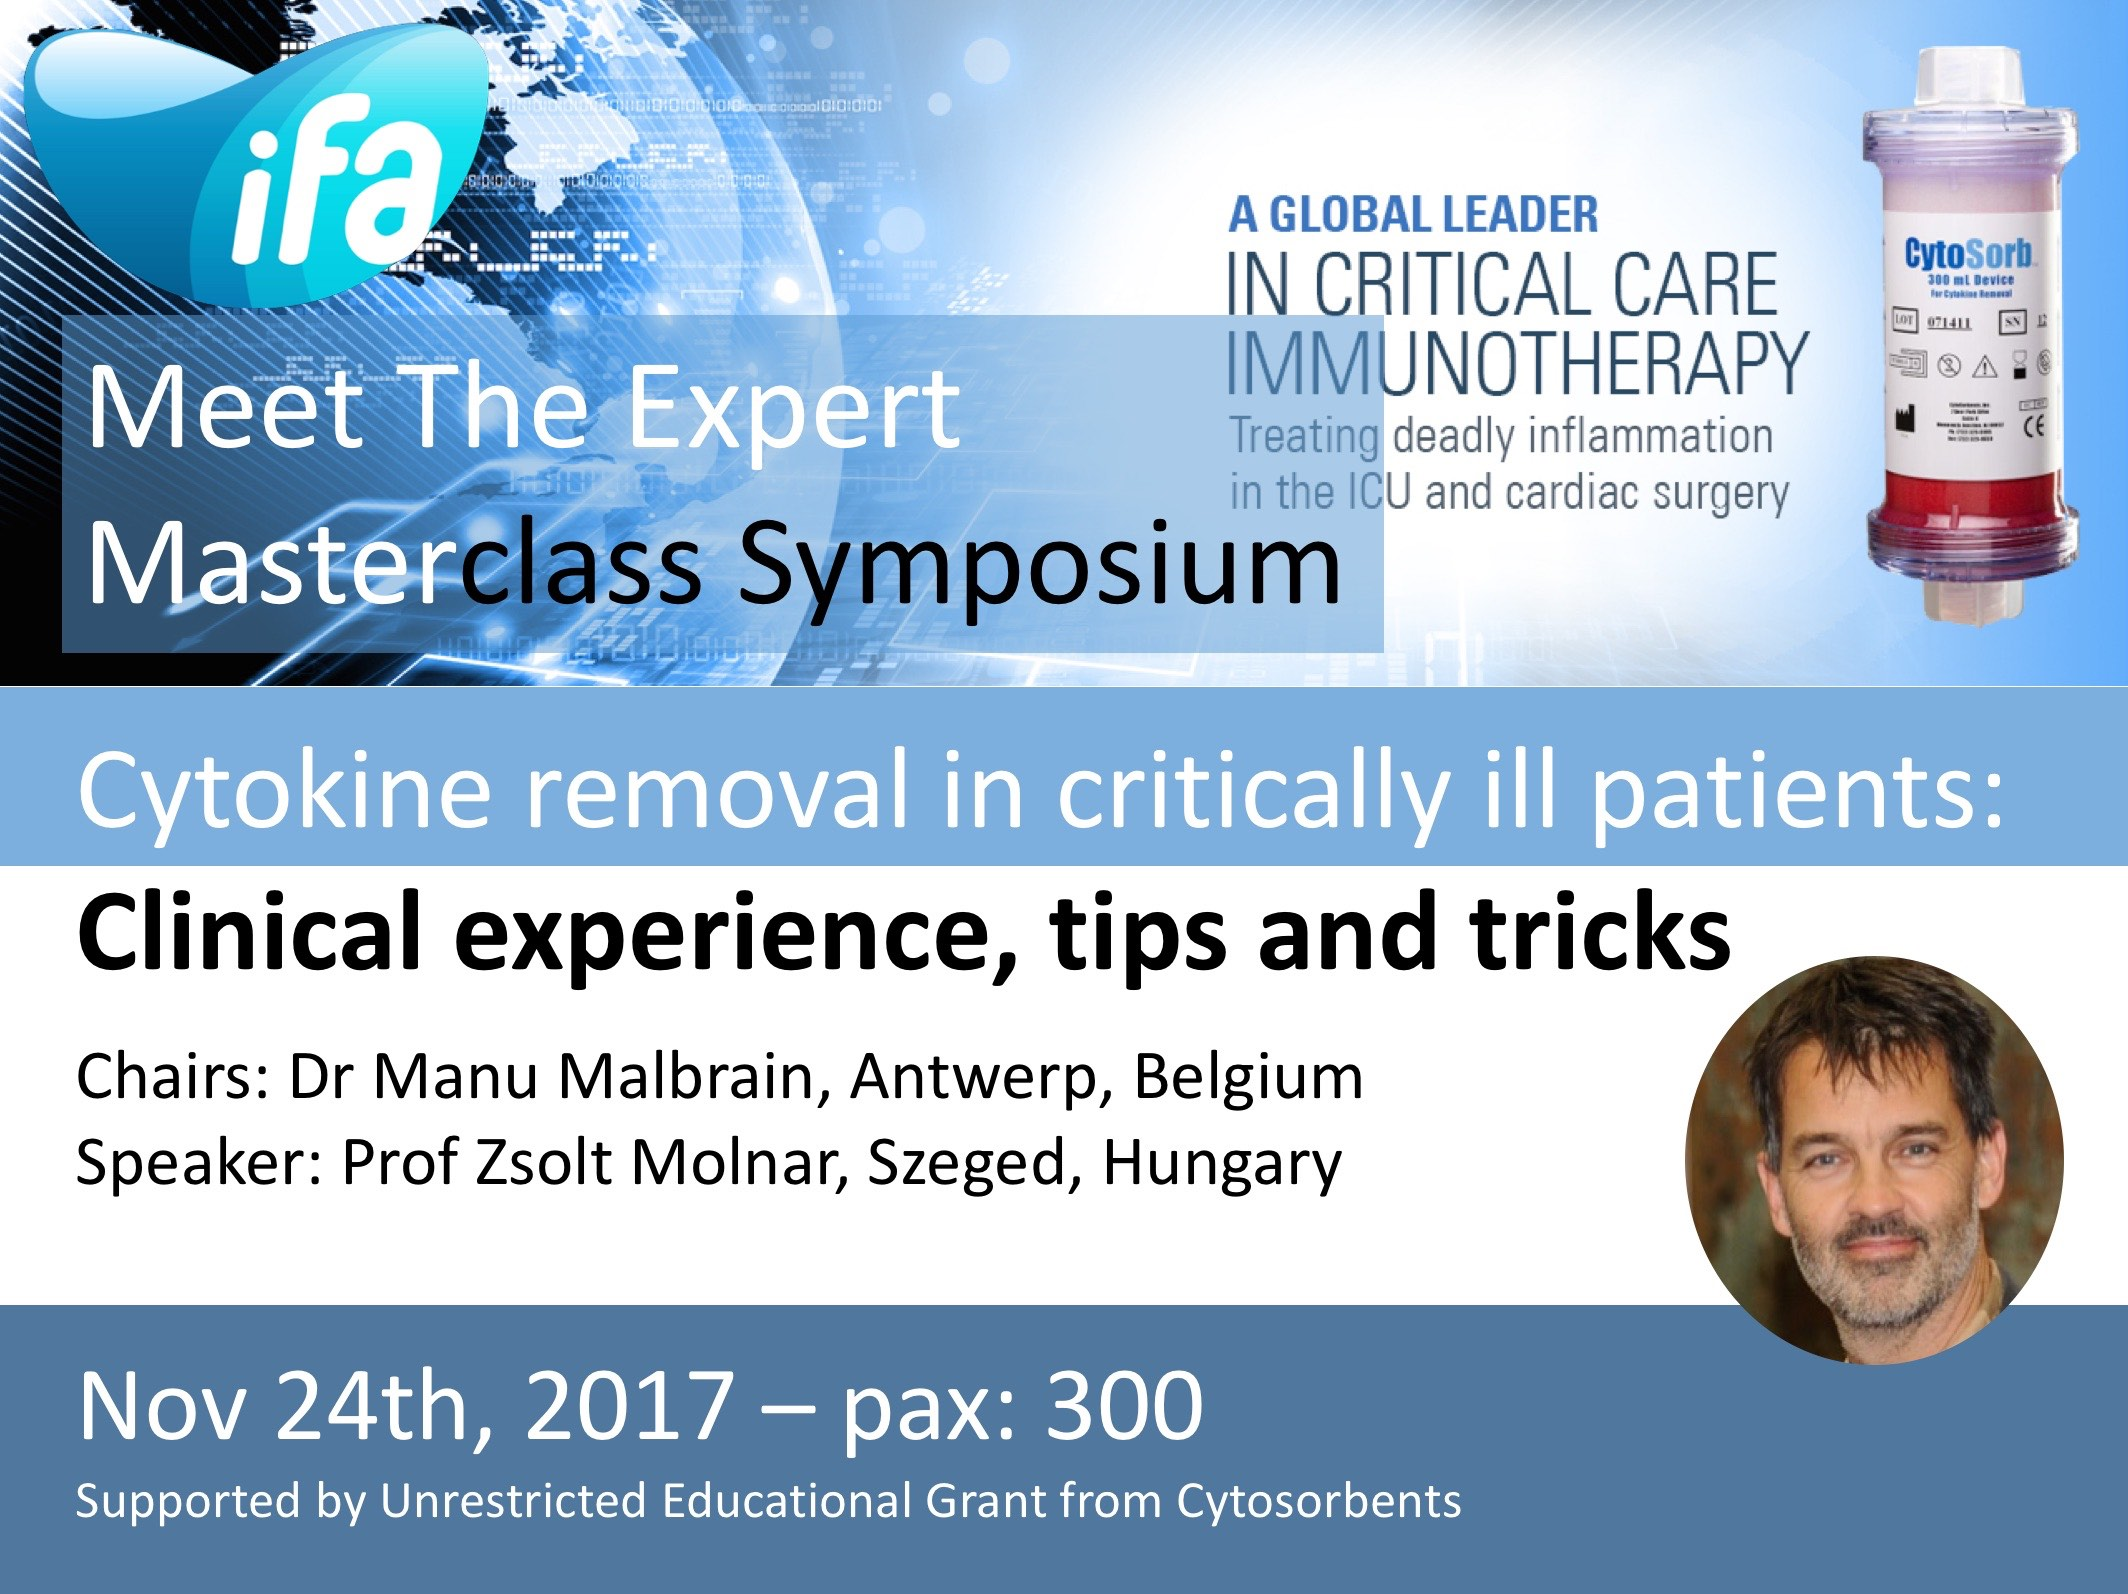 Satellite Masterclass Symposium on cytokine removal